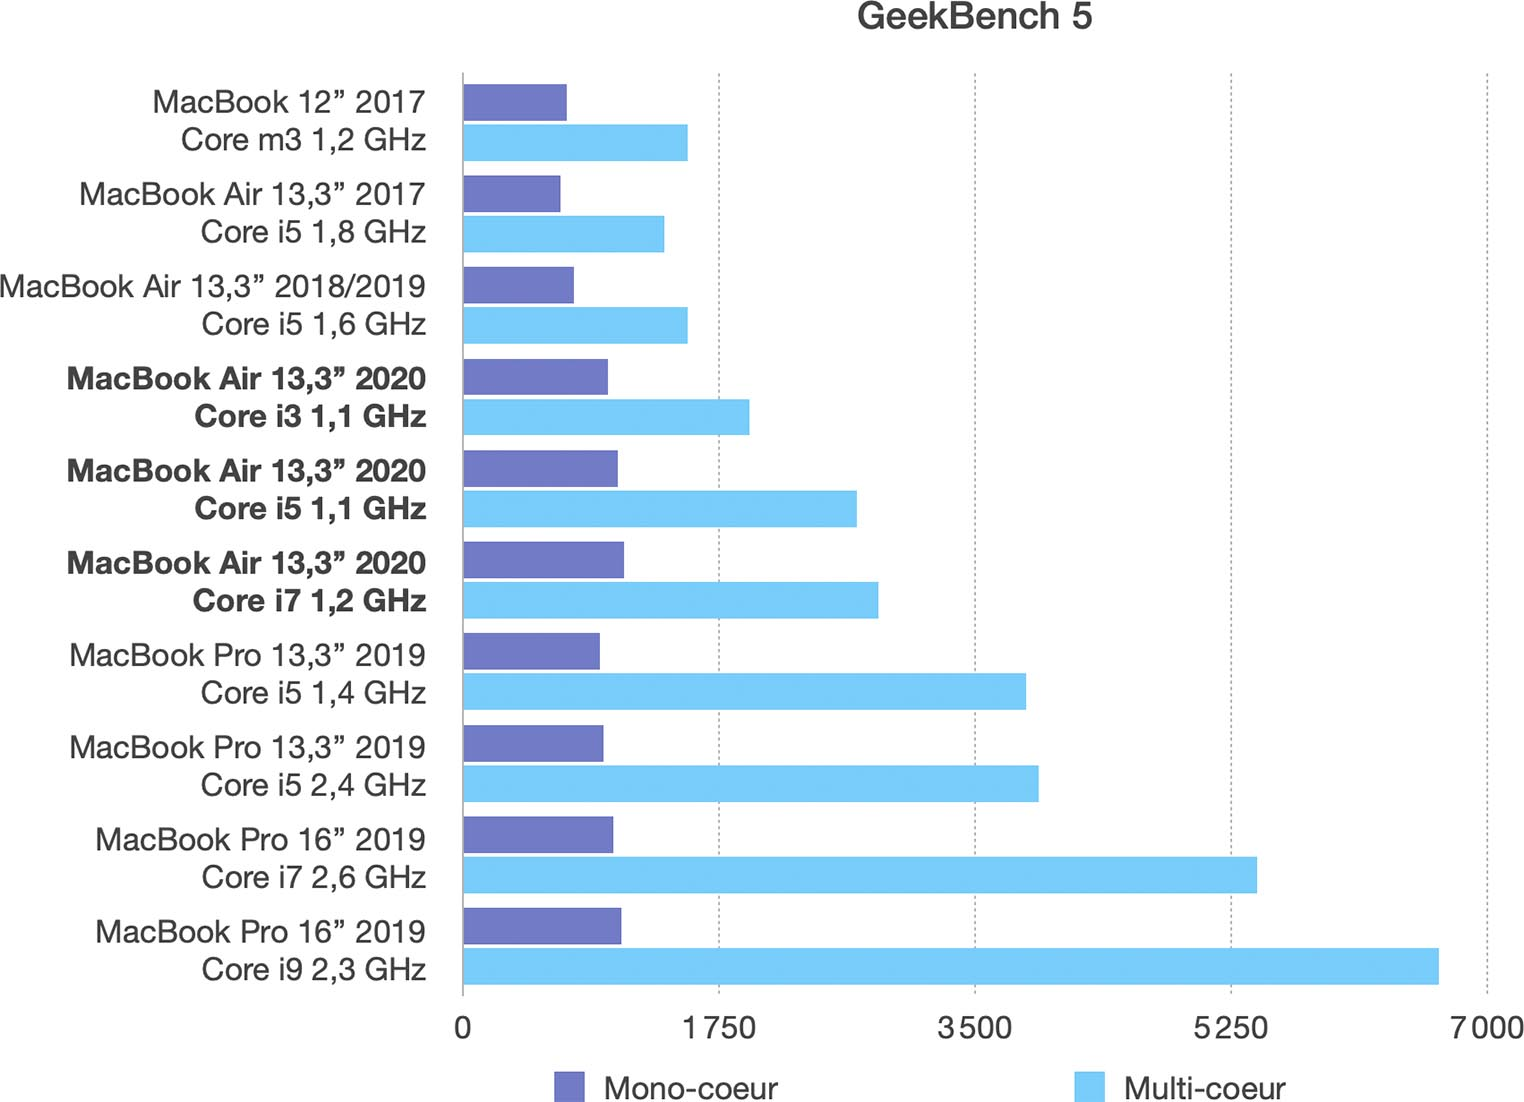 Test MacBook Air 2020 Geekbench 5